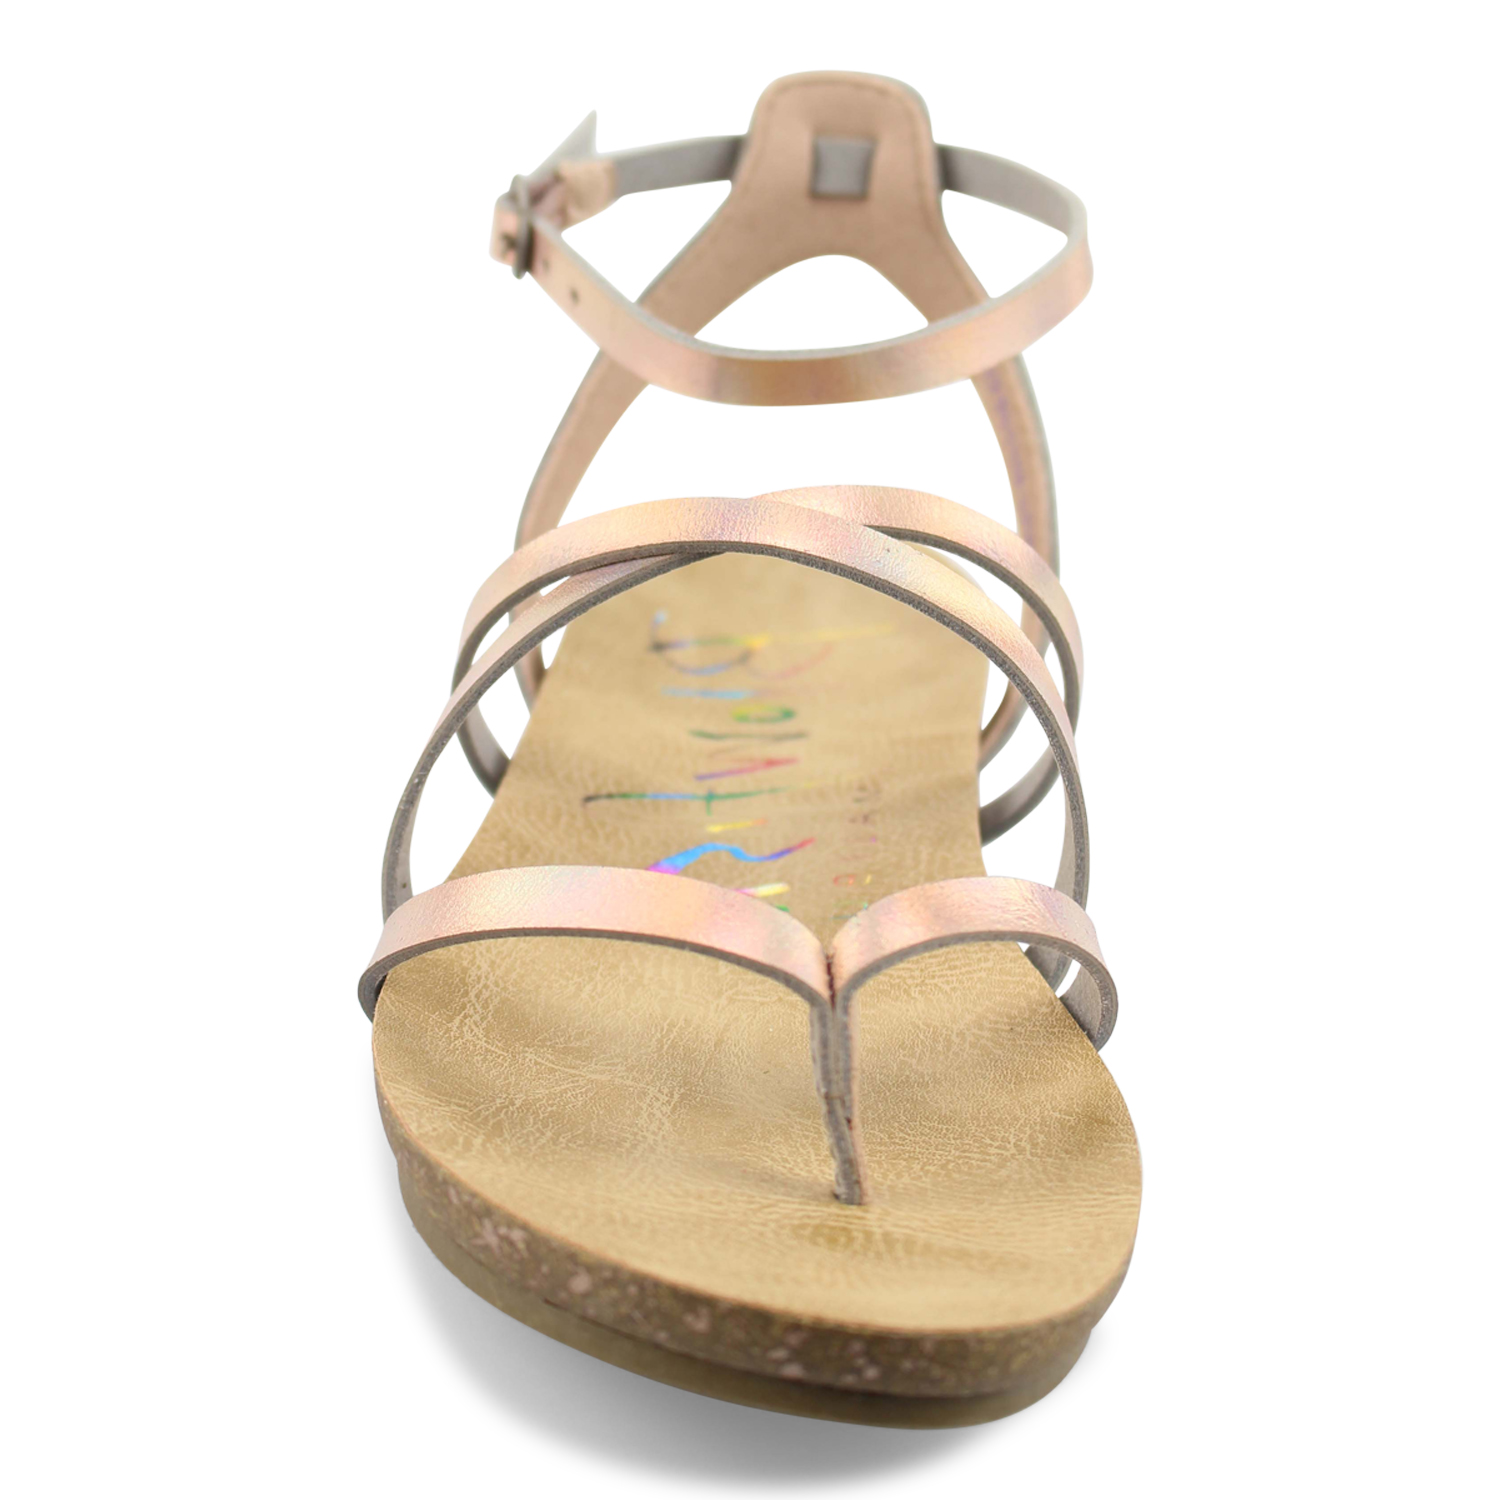 077da7ff3a0 Galaway - Strappy Womens Sandal With Cork Footbed